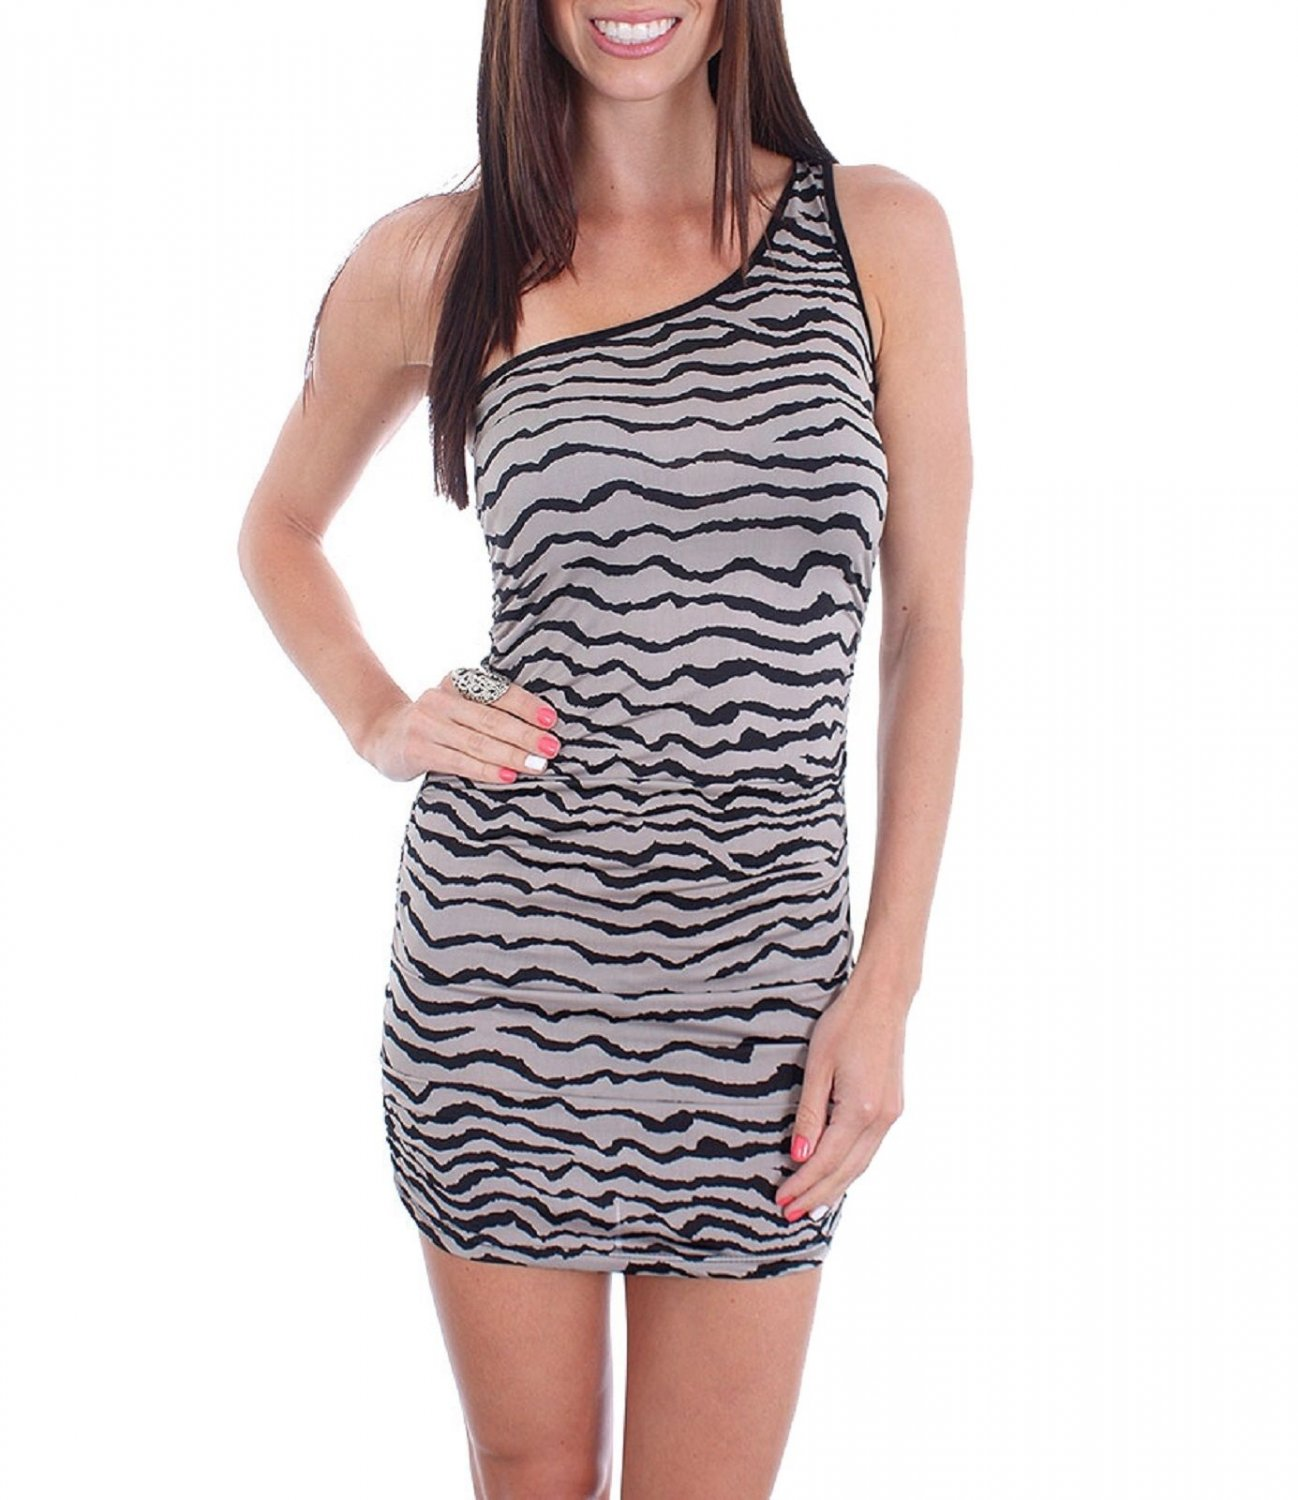 Cantata Mini Dress S Juniors Gray Zebra Tiger Stripe One Shoulder Ruched Small New